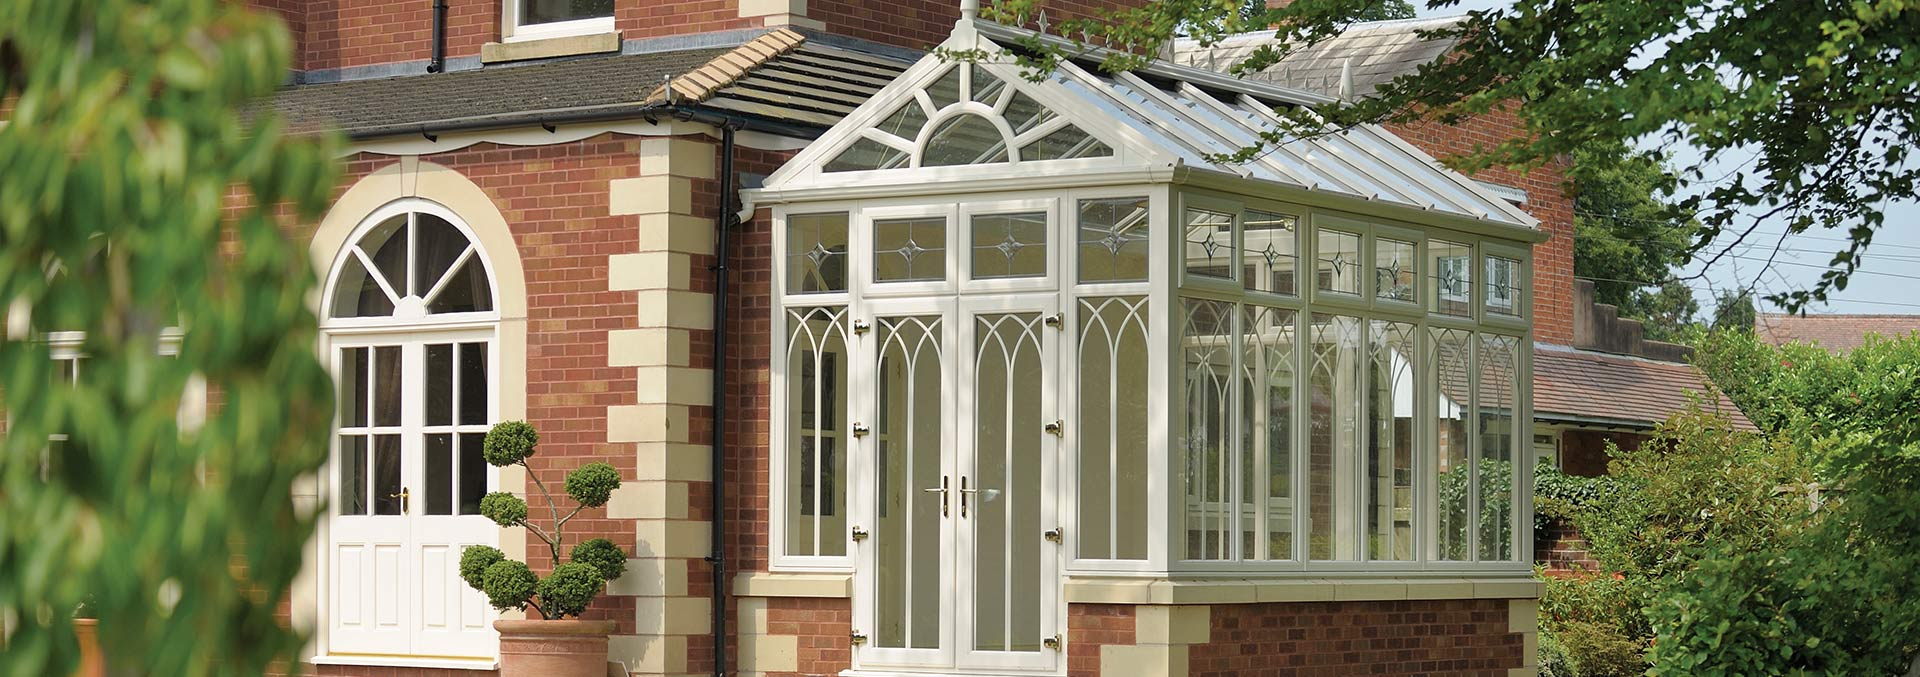 Custom made conservatory in uPVC with gable front roof